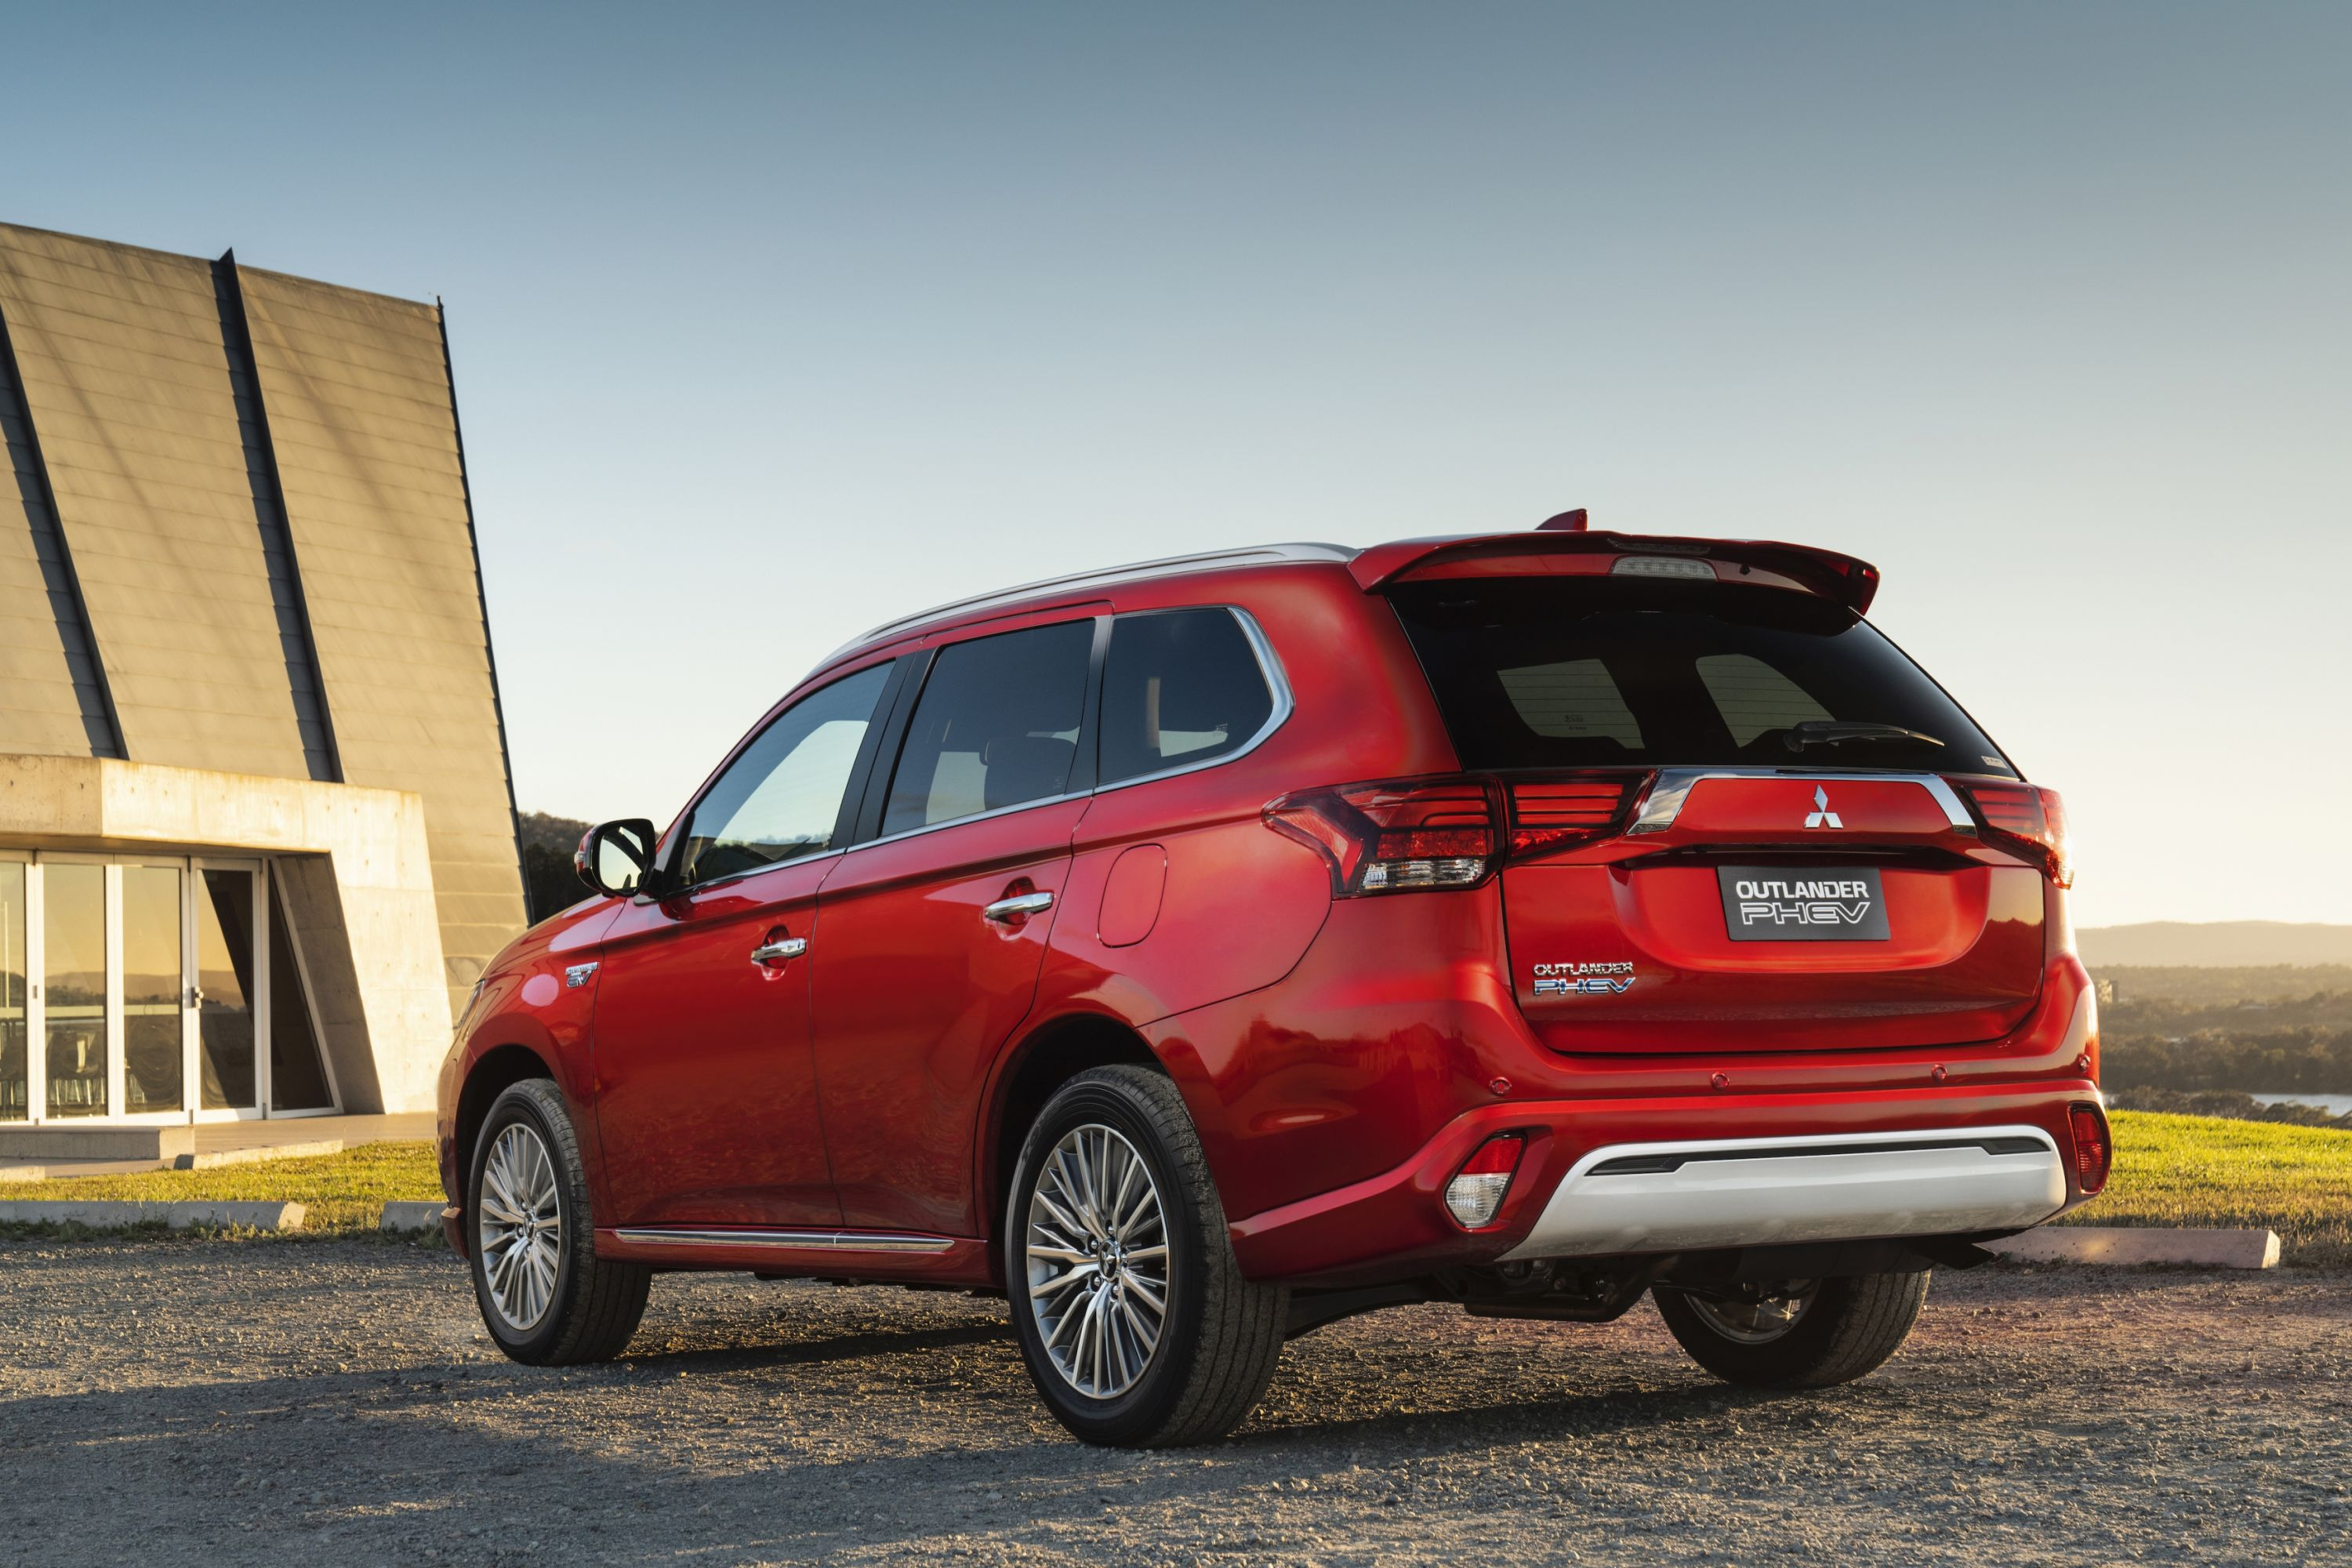 2020 mitsubishi outlander pricing and specs   carexpert